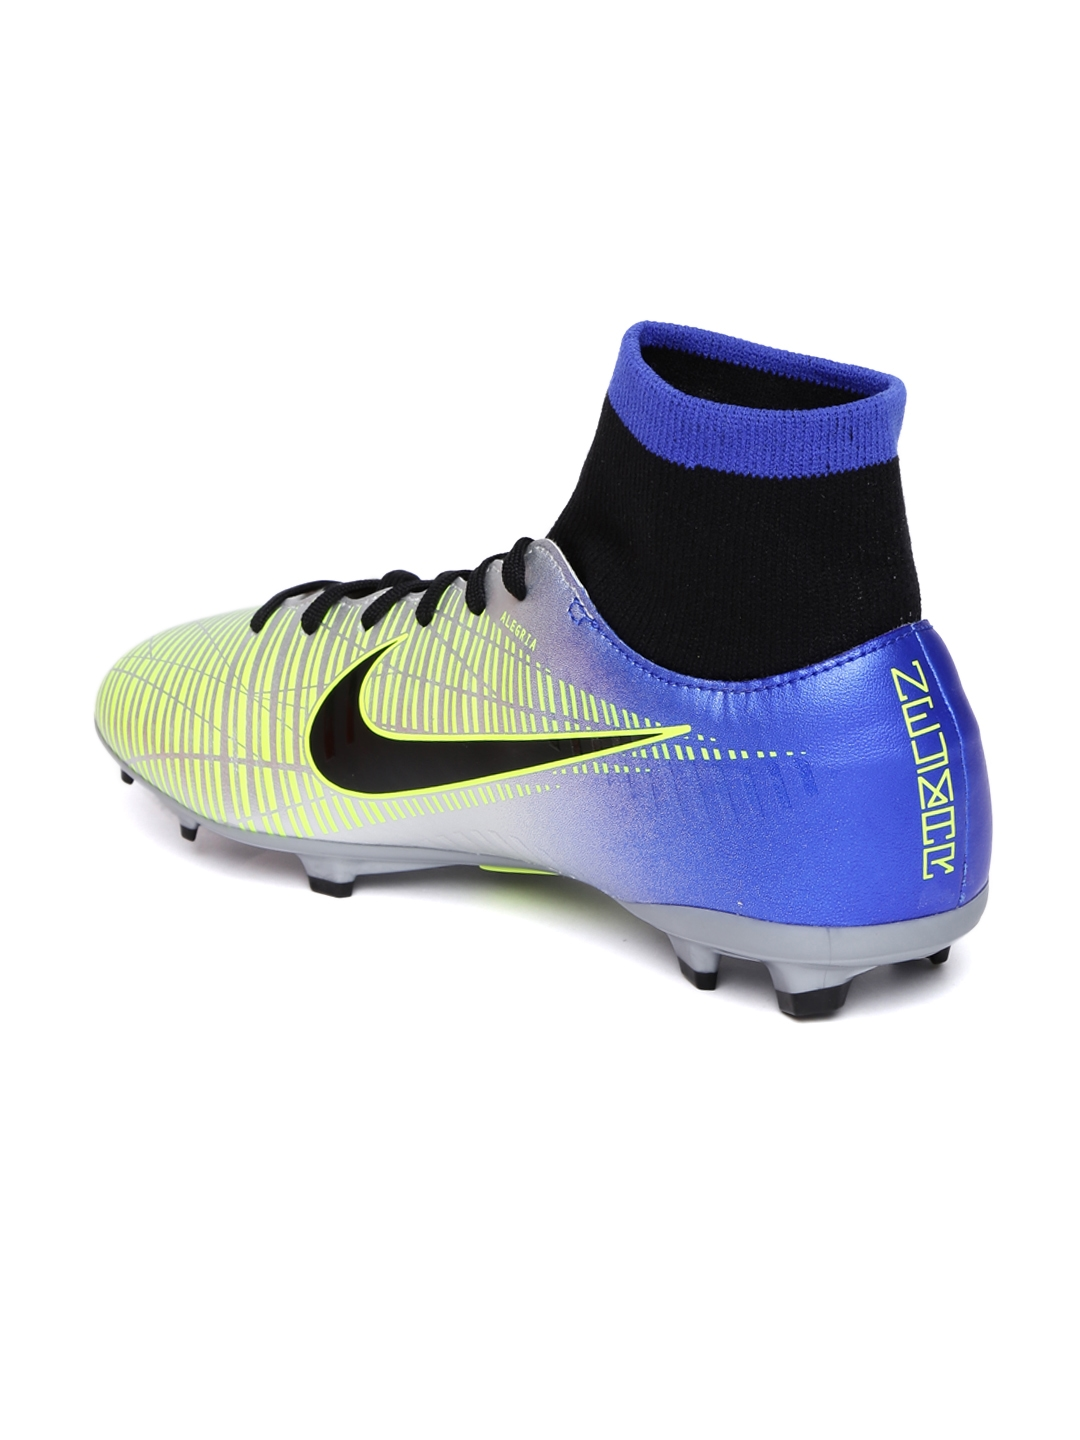 b2d09260c Nike Kids Silver-Toned   Blue MERCURIAL VCTRY 6 DF neymar firm ground  Football Shoes